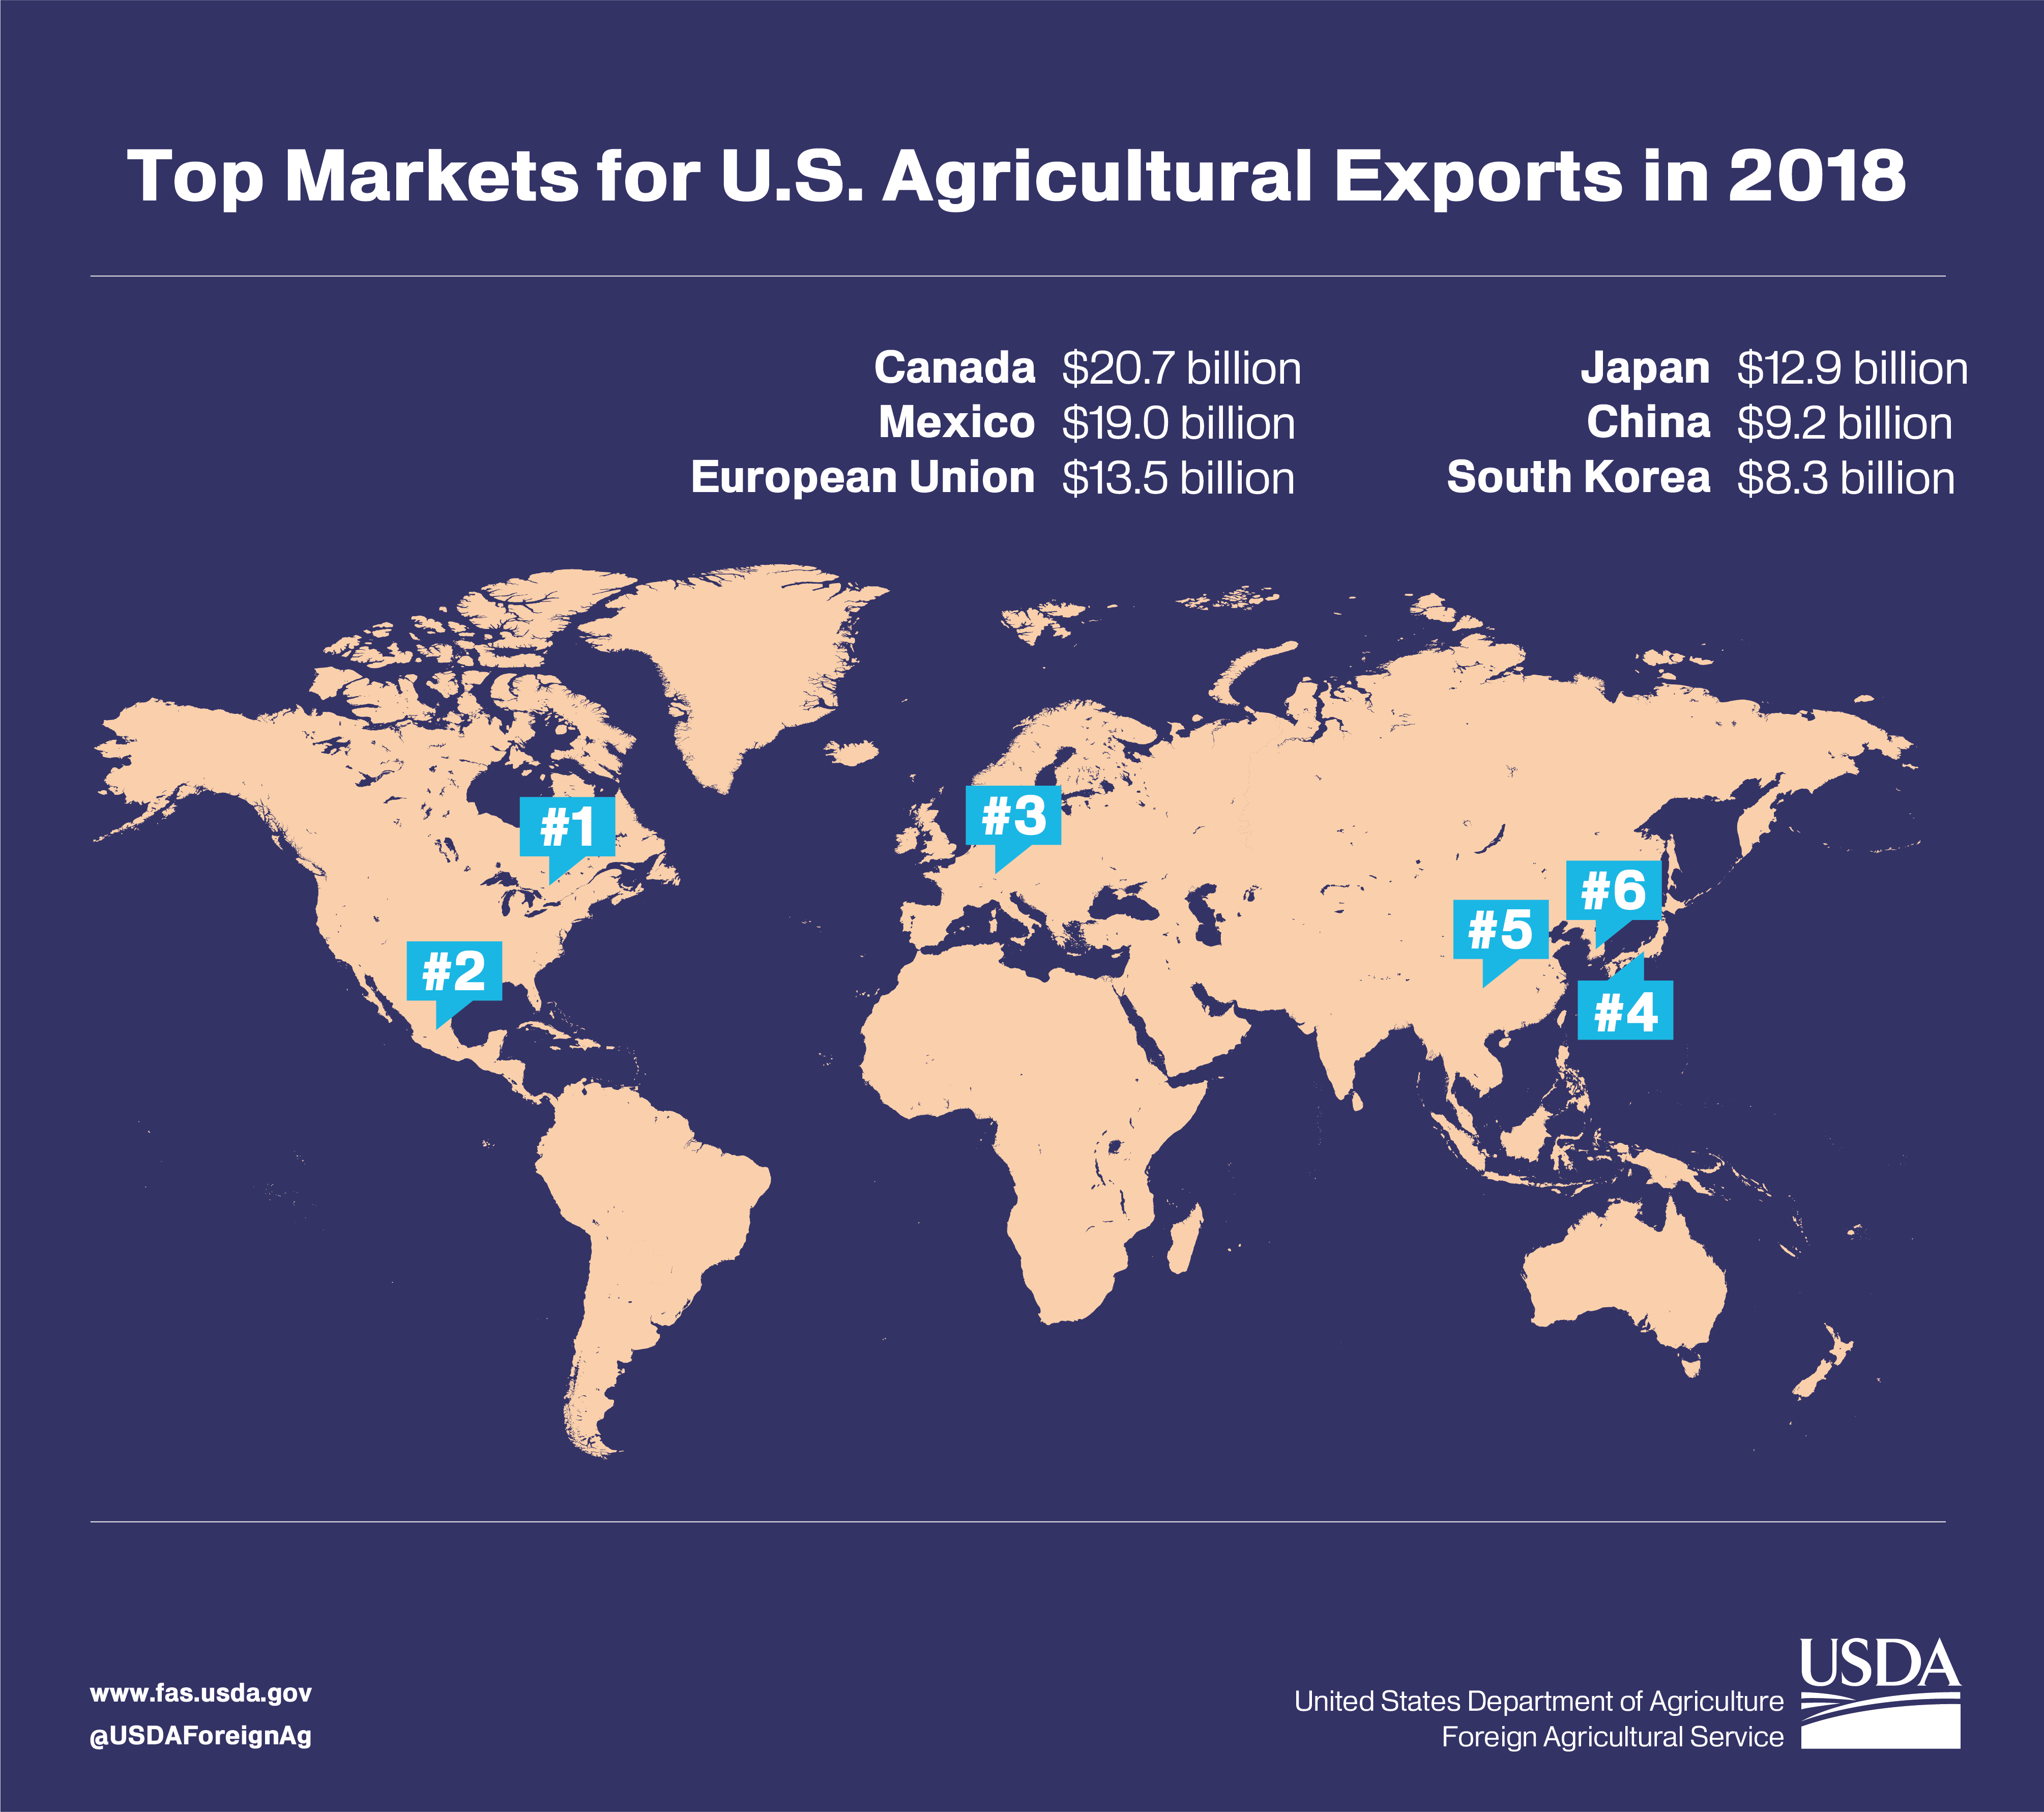 Graphic showing the top markets for U.S. ag exports in 2018.  Canada was the top market, followed by Mexico and the European Union.